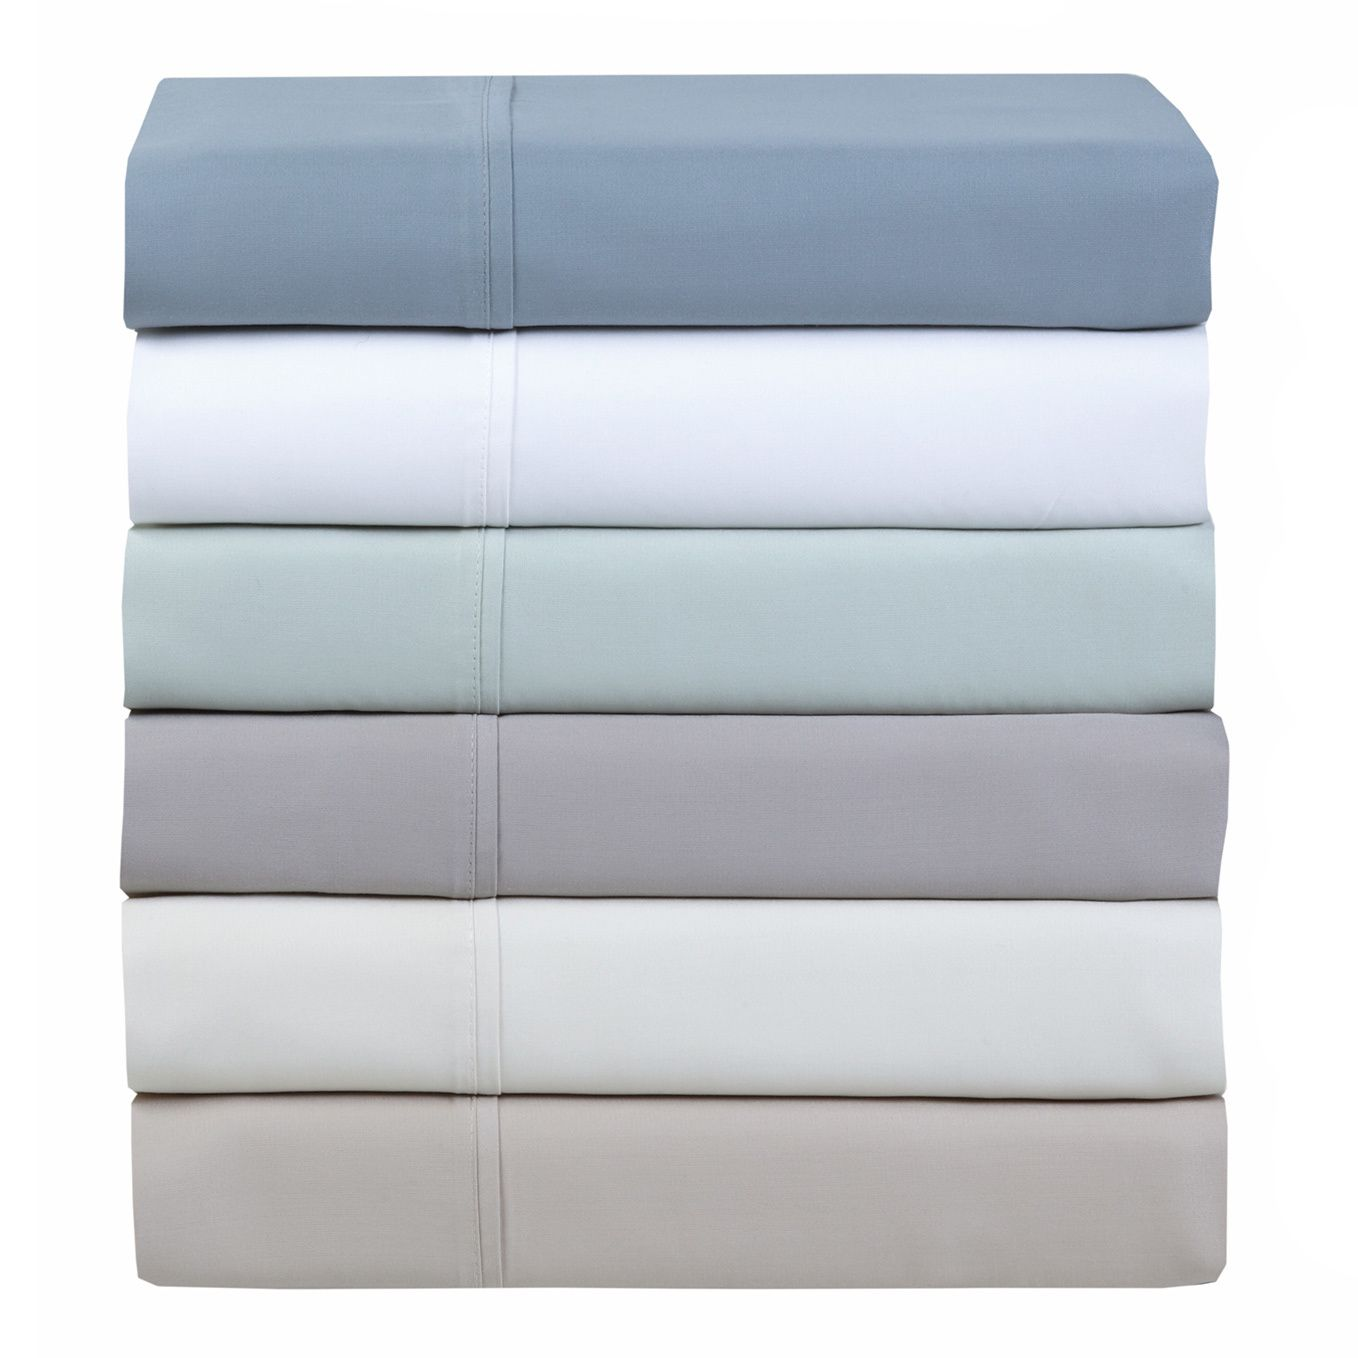 the 500 thread count sheets will create a natural silky refuge on